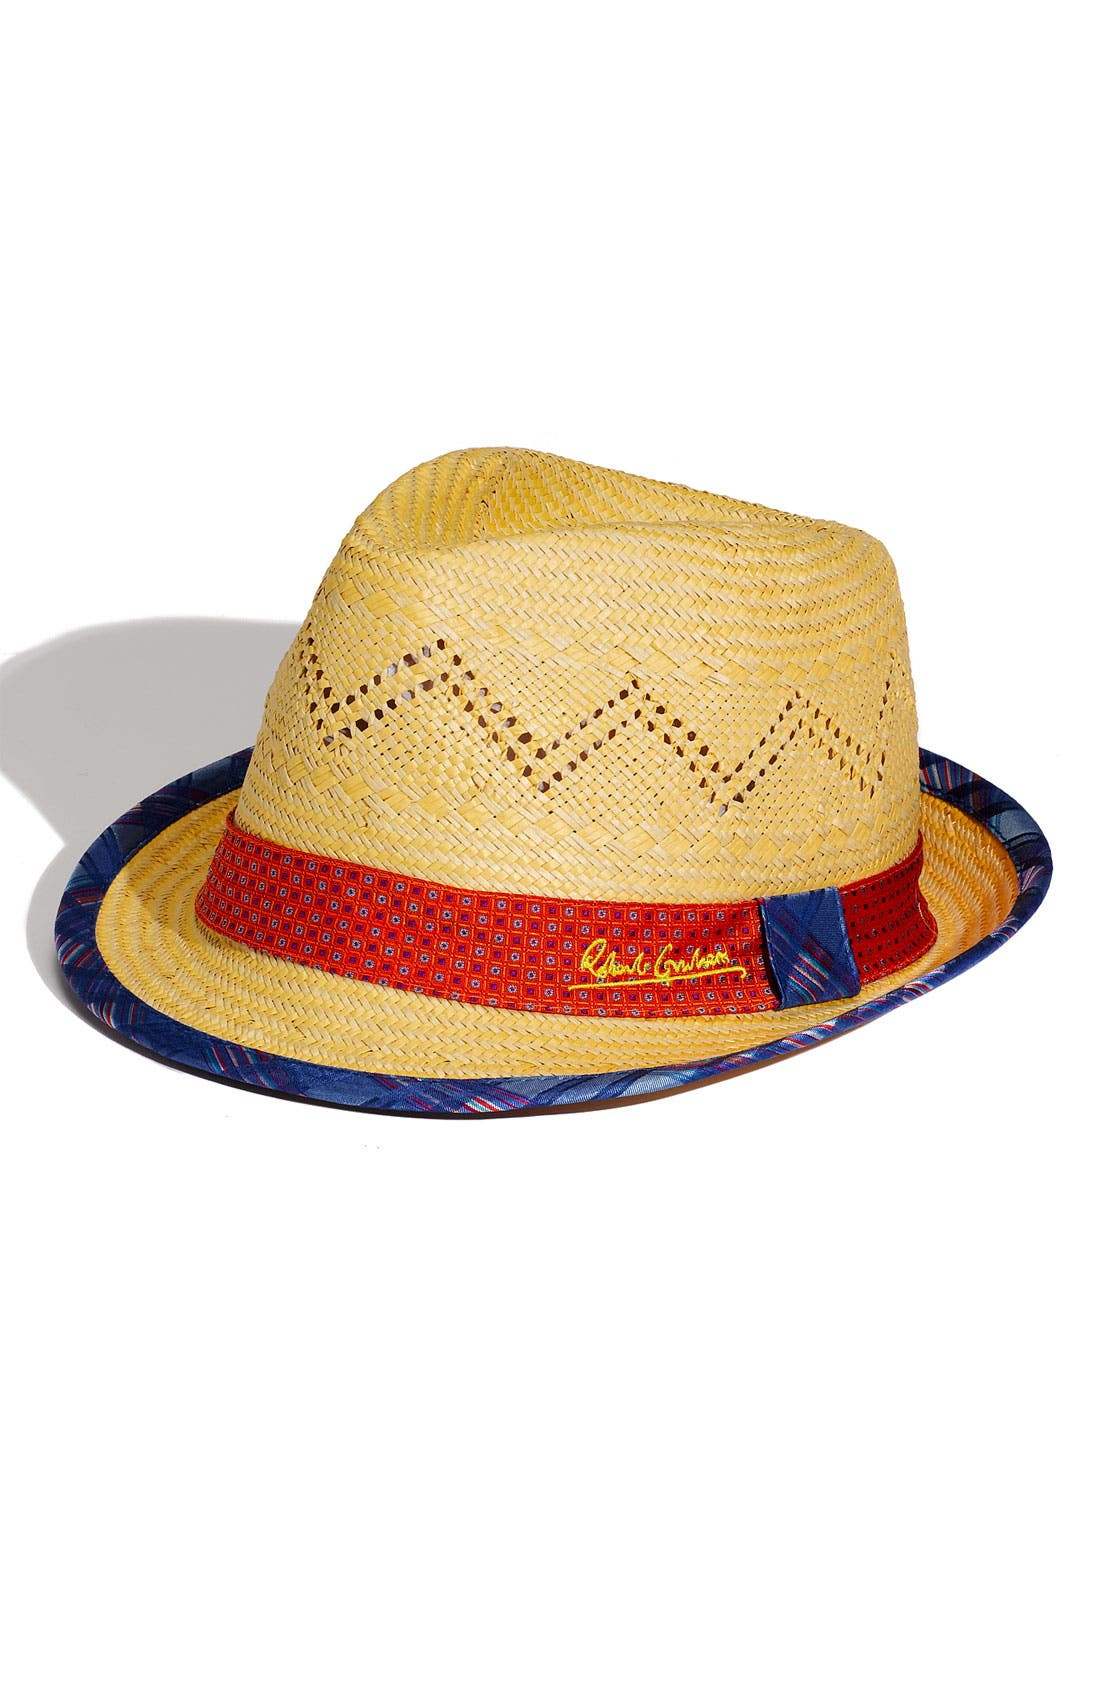 Main Image - Robert Graham 'Bruno' Straw Fedora